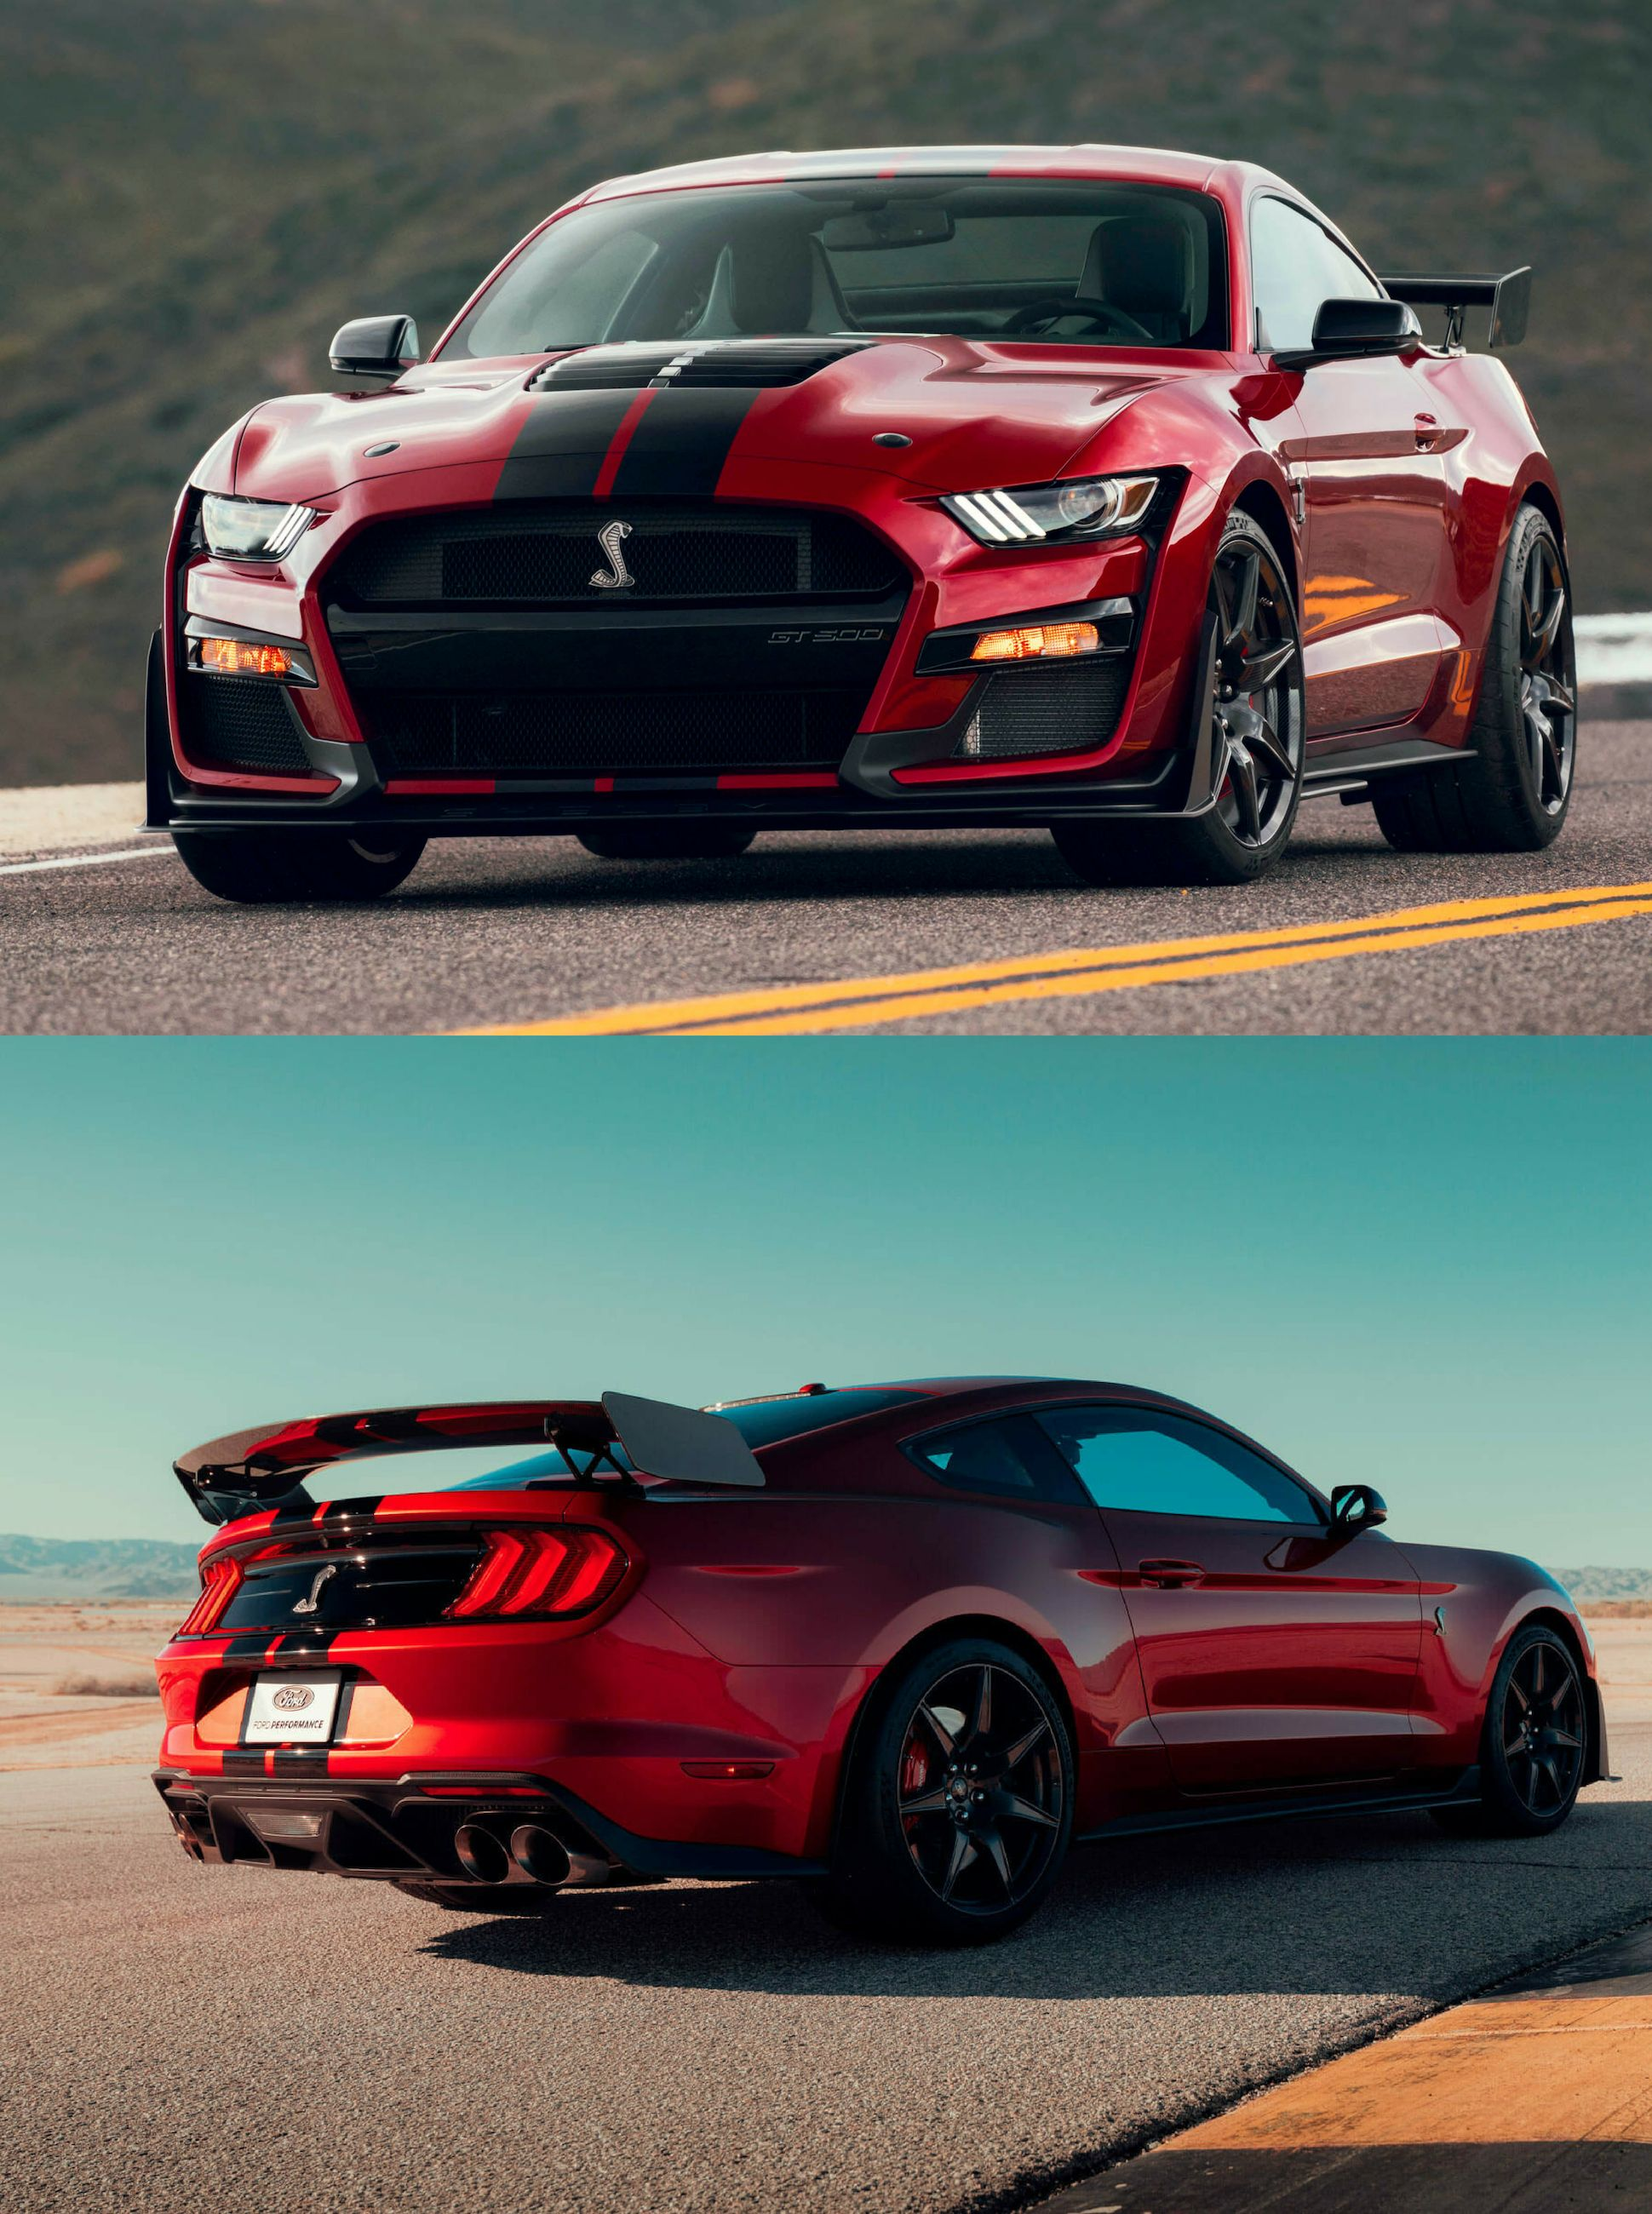 2020 Ford Mustang Shelby Gt500 With 5 2 Liter Supercharged V8